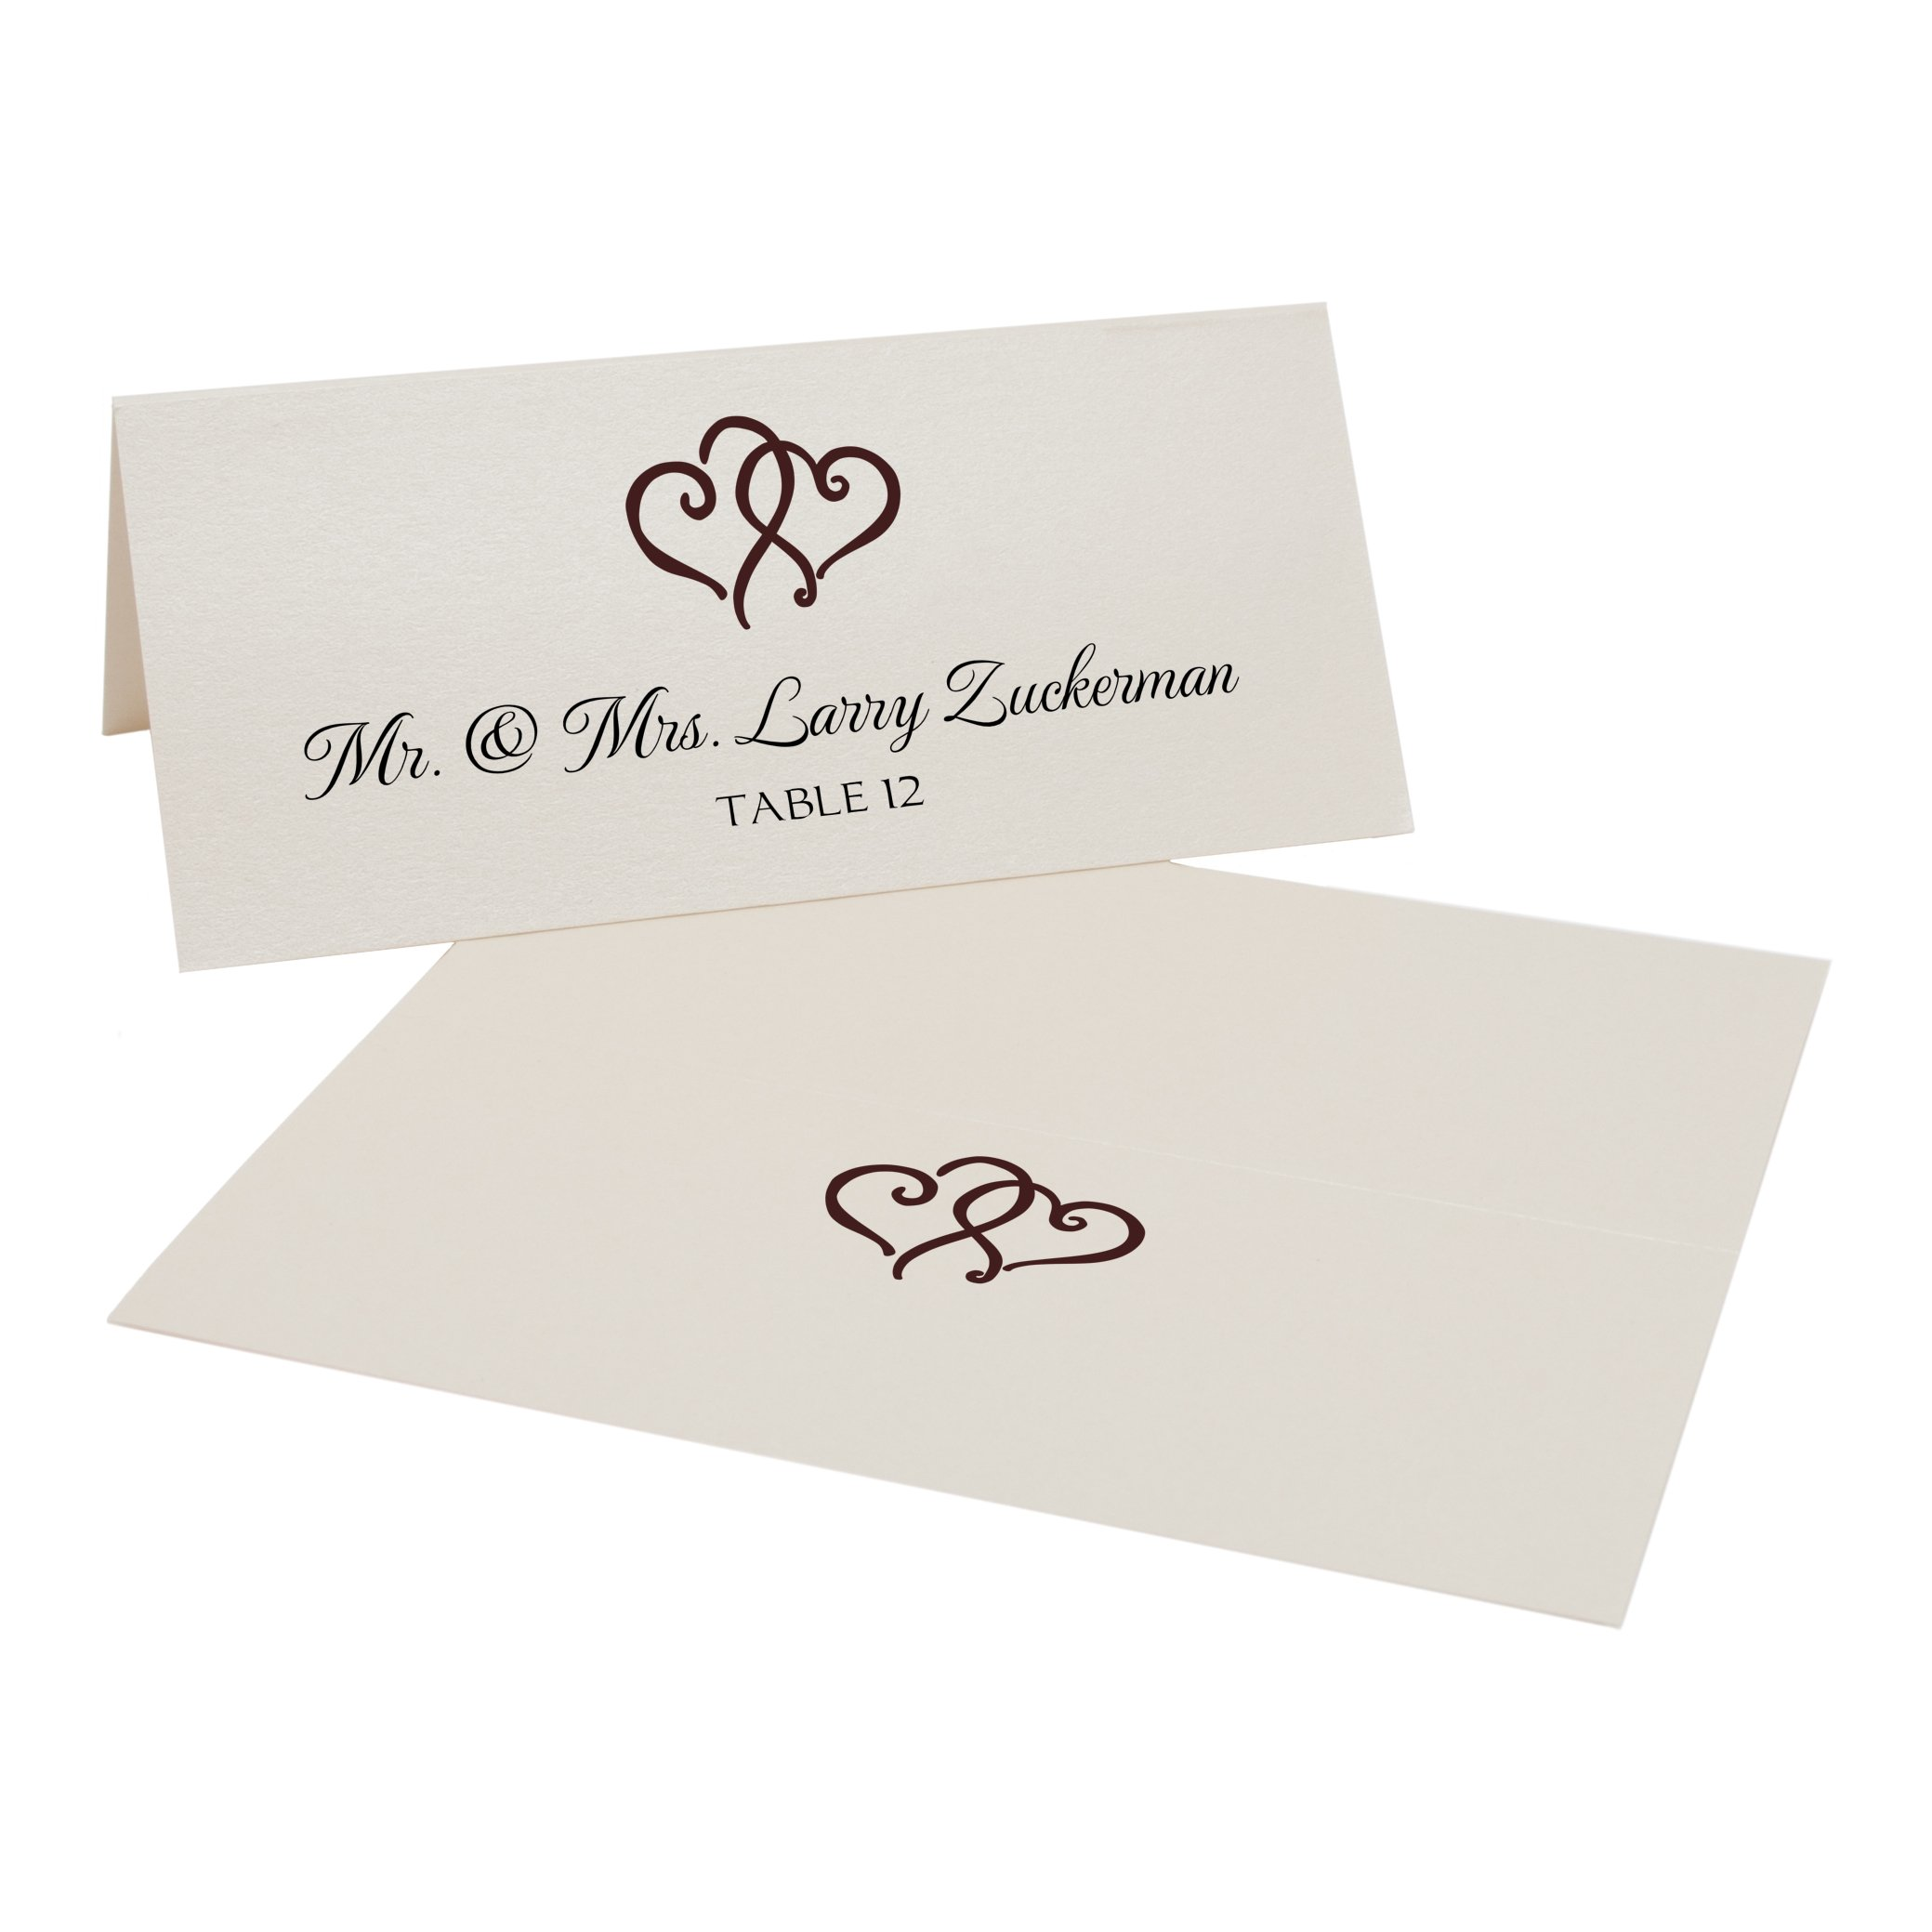 Linked Hearts Place Cards, Champagne, Chocolate, Set of 375